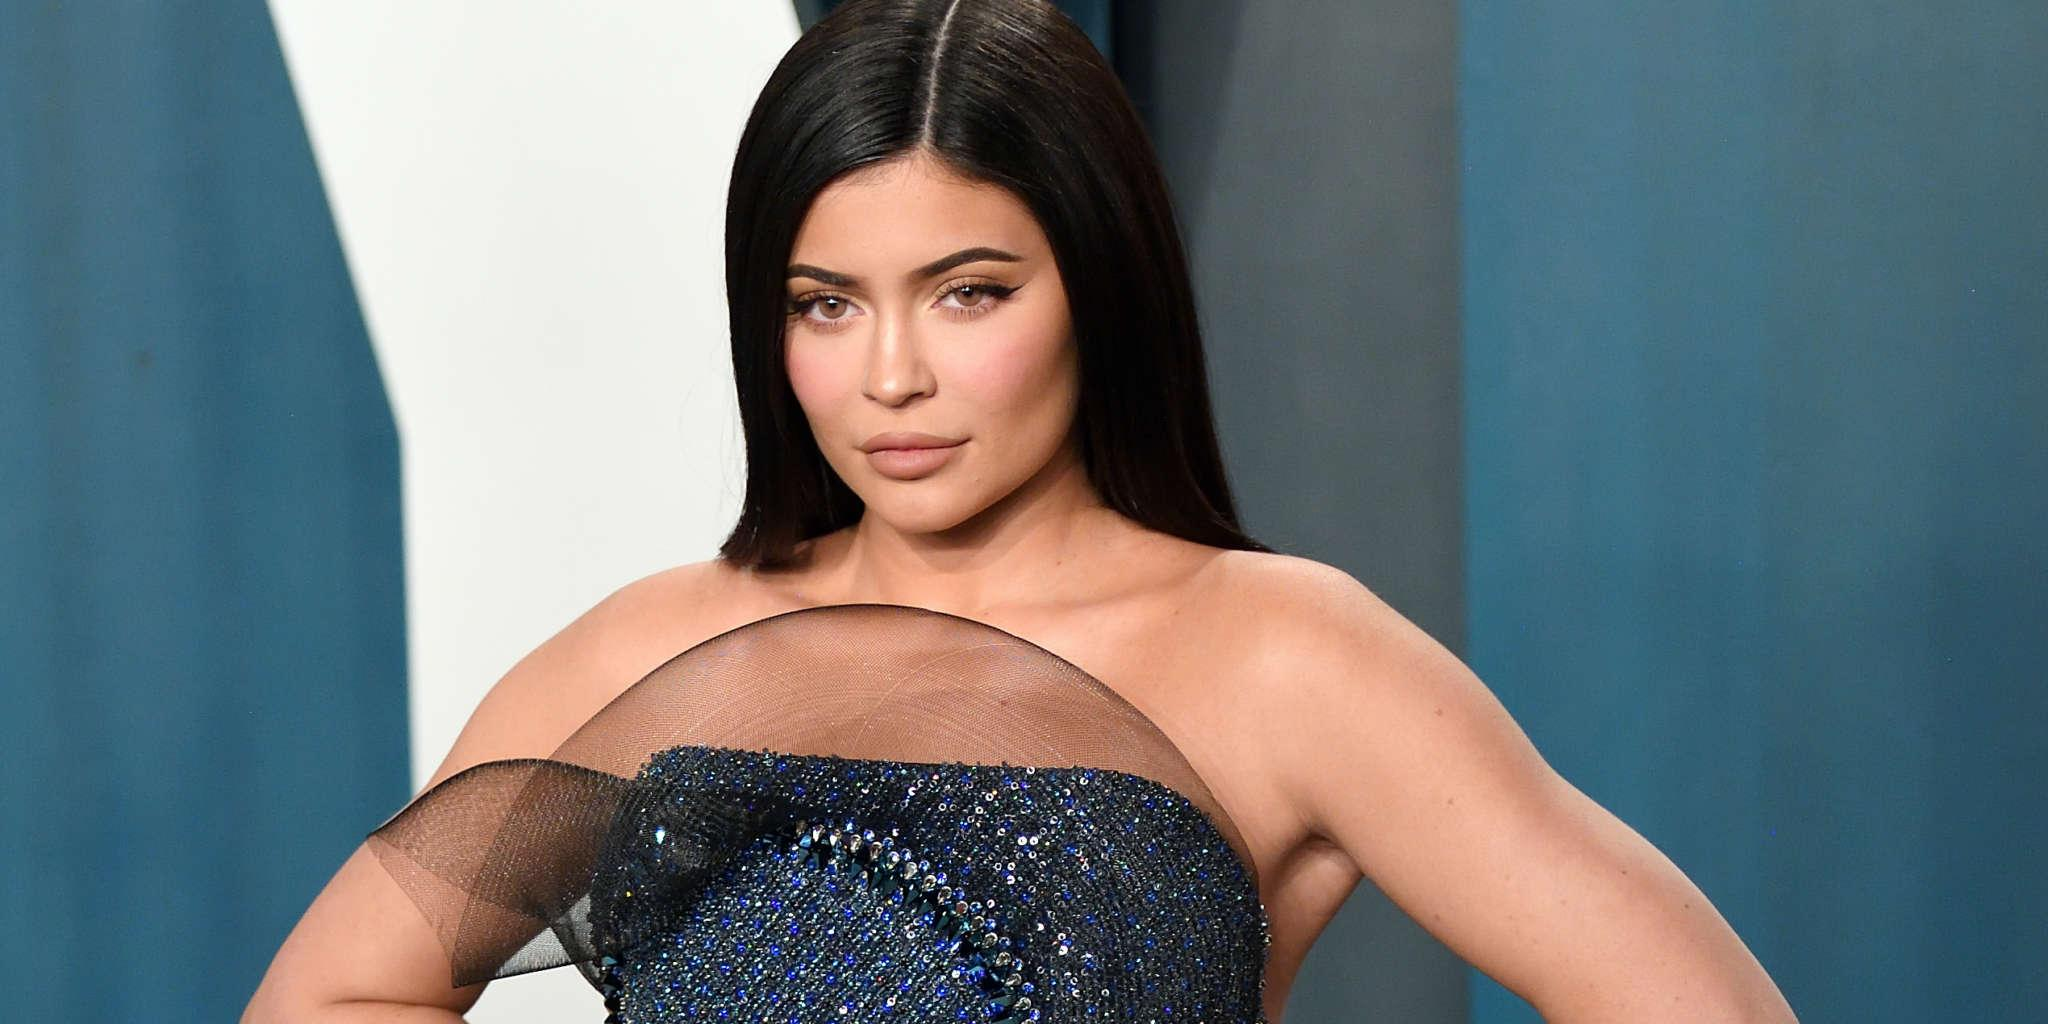 KUWK: Kylie Jenner Reveals 13% Of Kylie Cosmetics Employees Are Black And Fans Criticize Her - 'Do Better!'